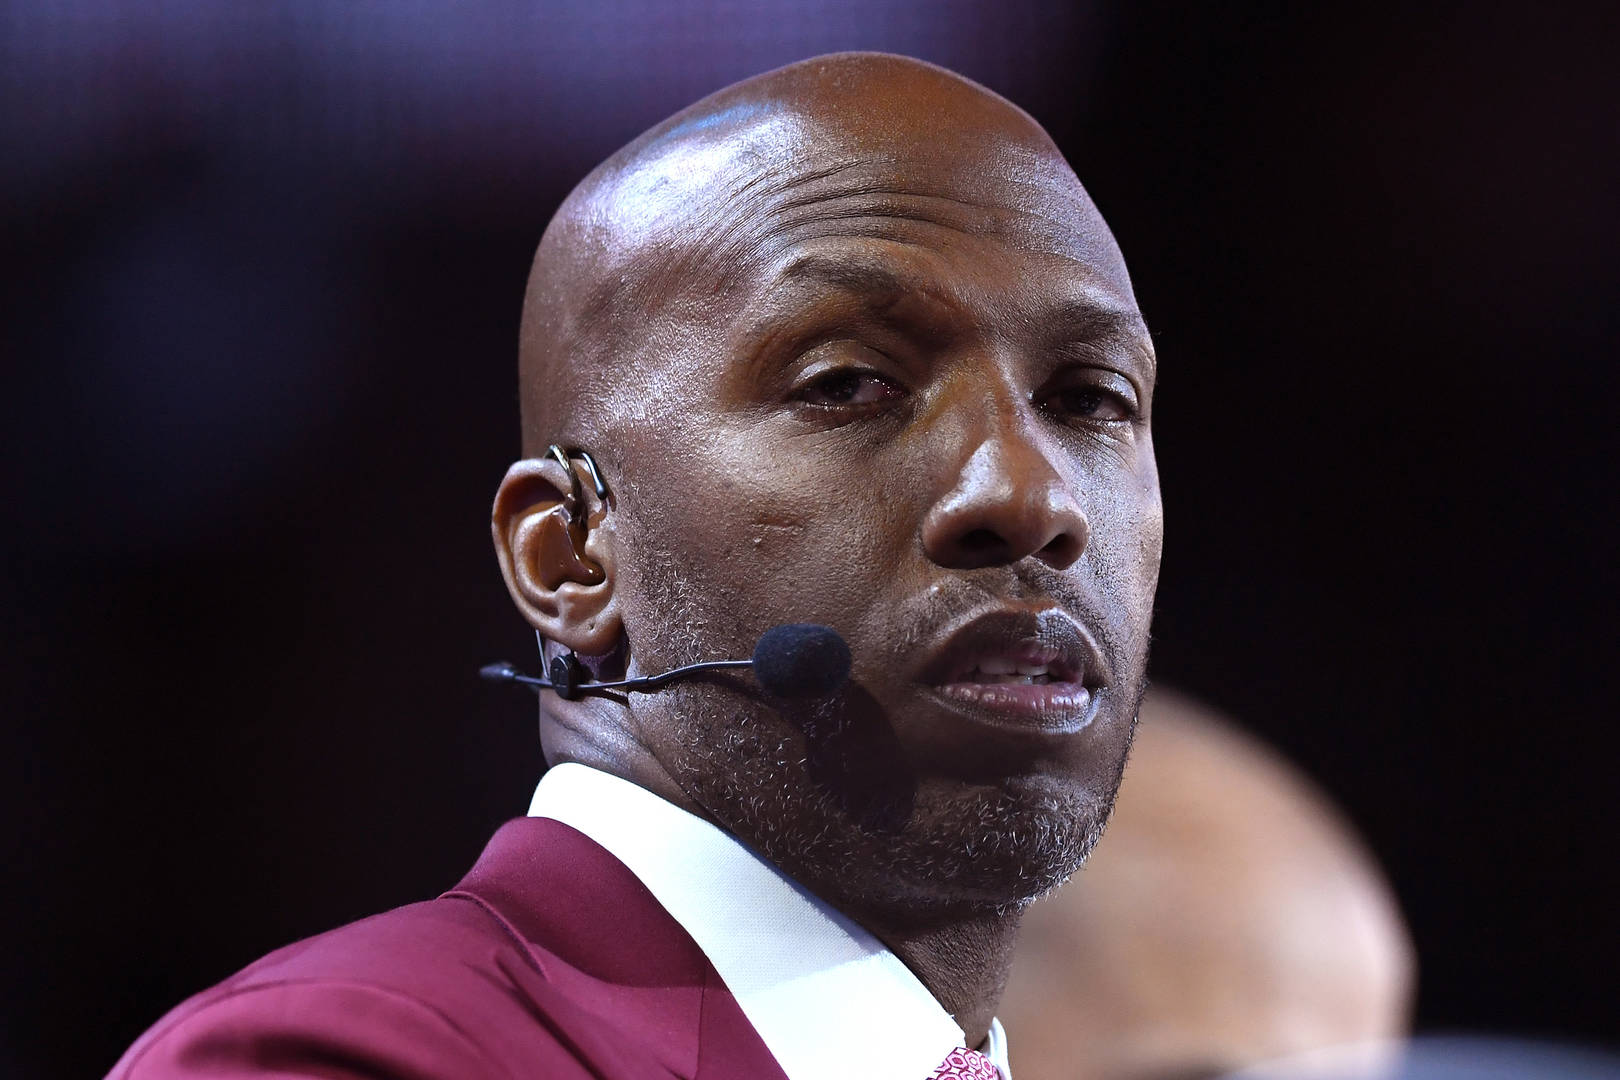 Commentator Chauncey Billups looks on during the 2019 NBA Draft at the Barclays Center on June 20, 2019 in the Brooklyn borough of New York City.